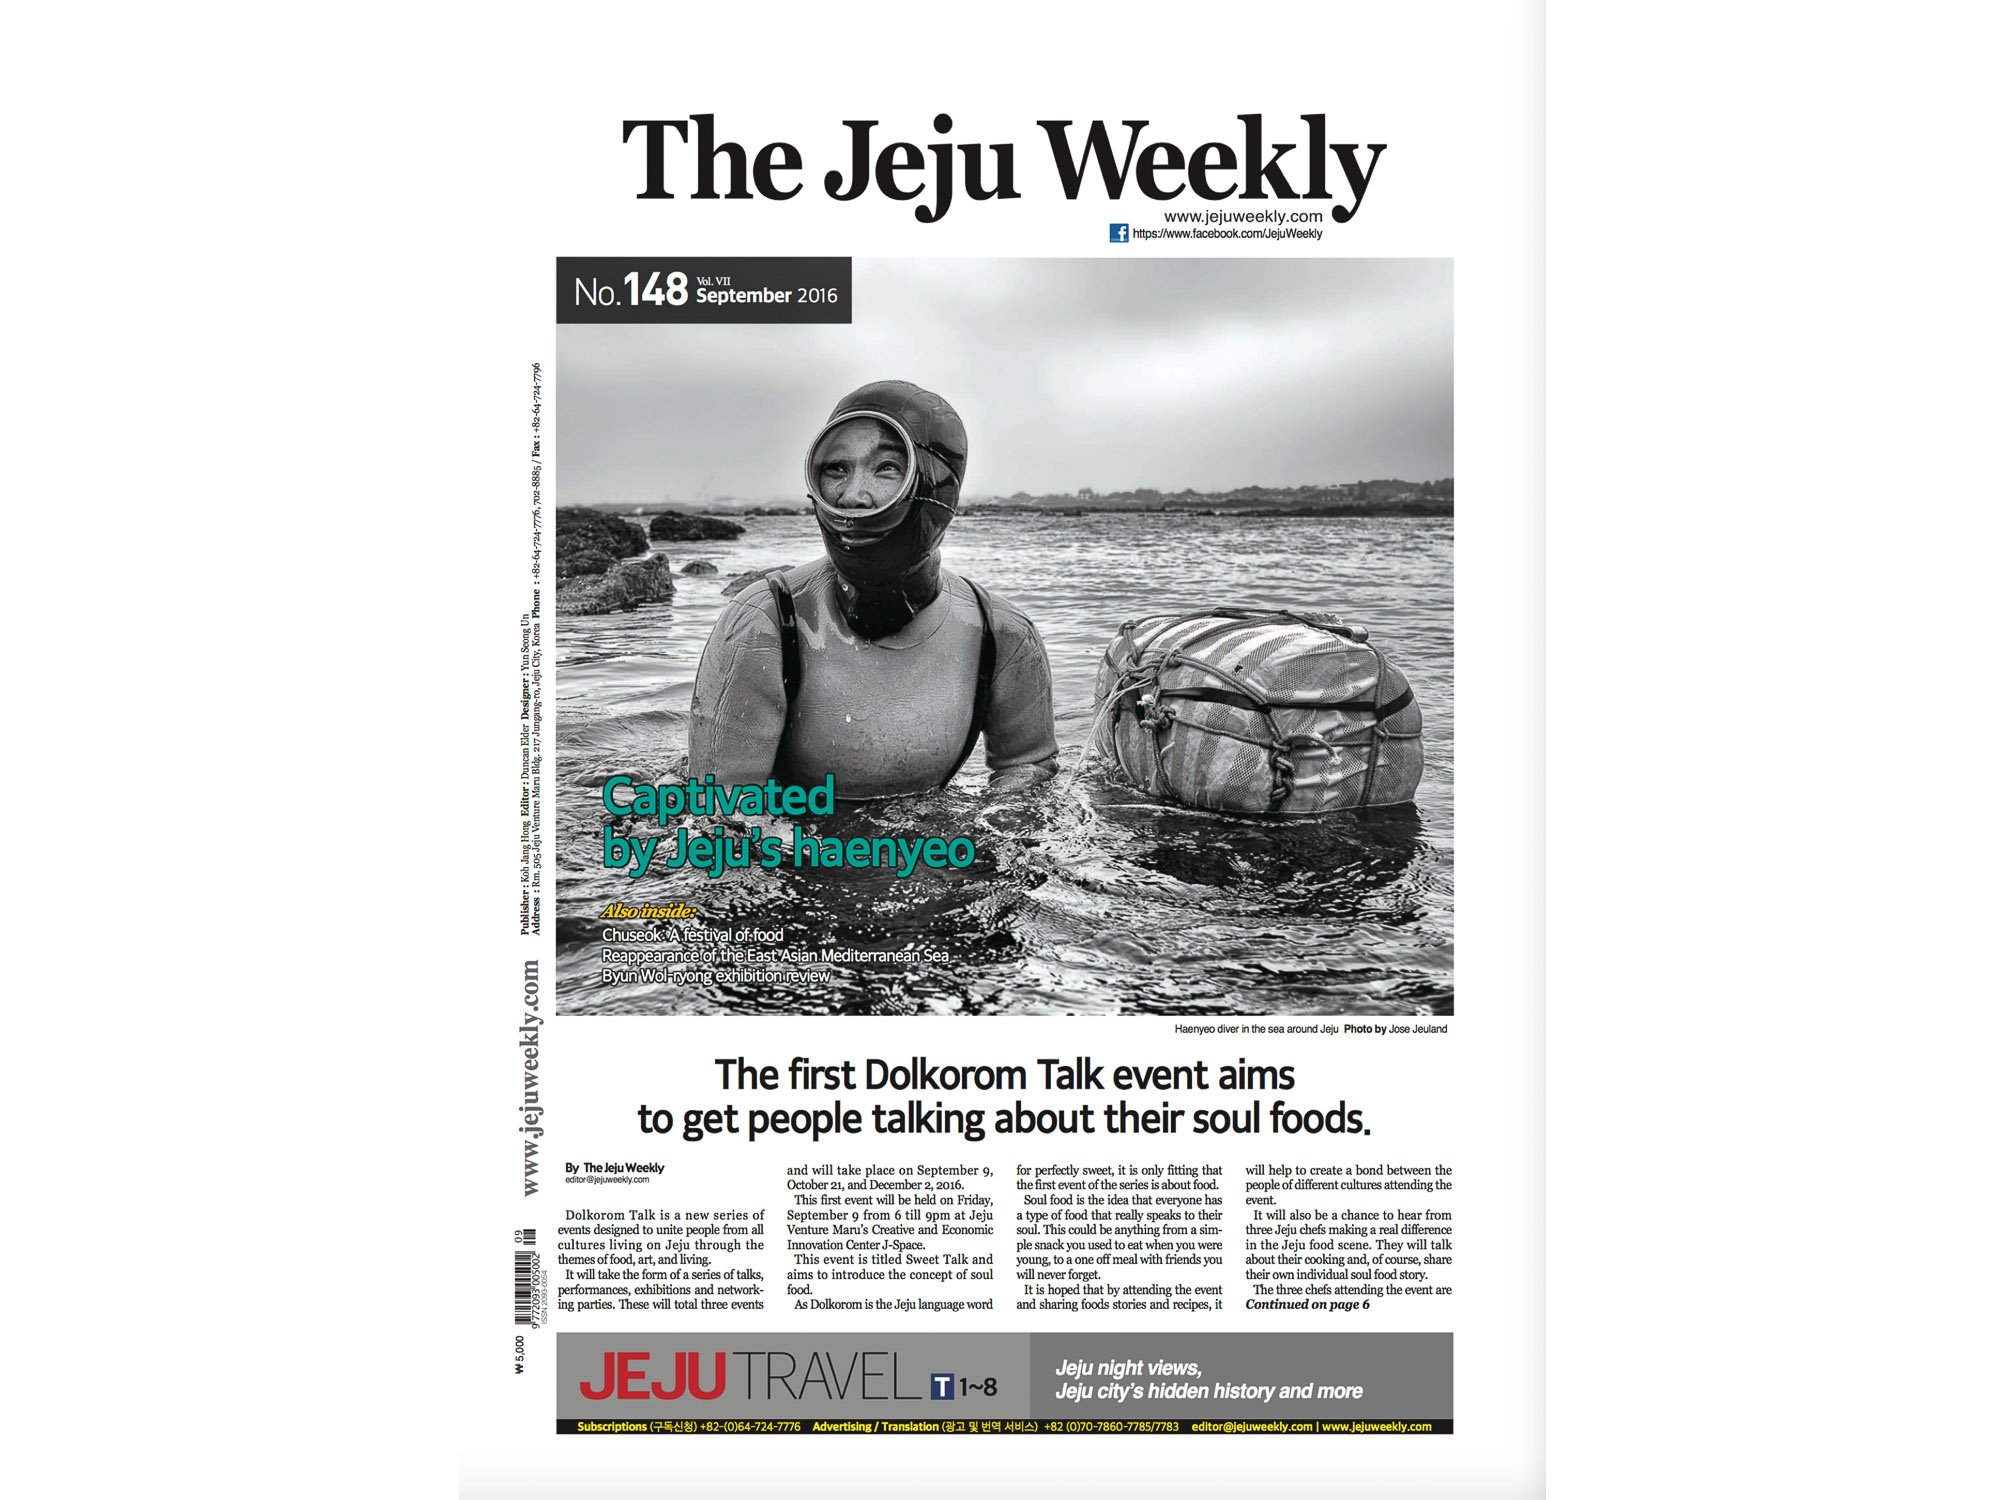 Jose Jeuland Triathlete Photographer The Jeju Weekly newspaper Haenyeo cover